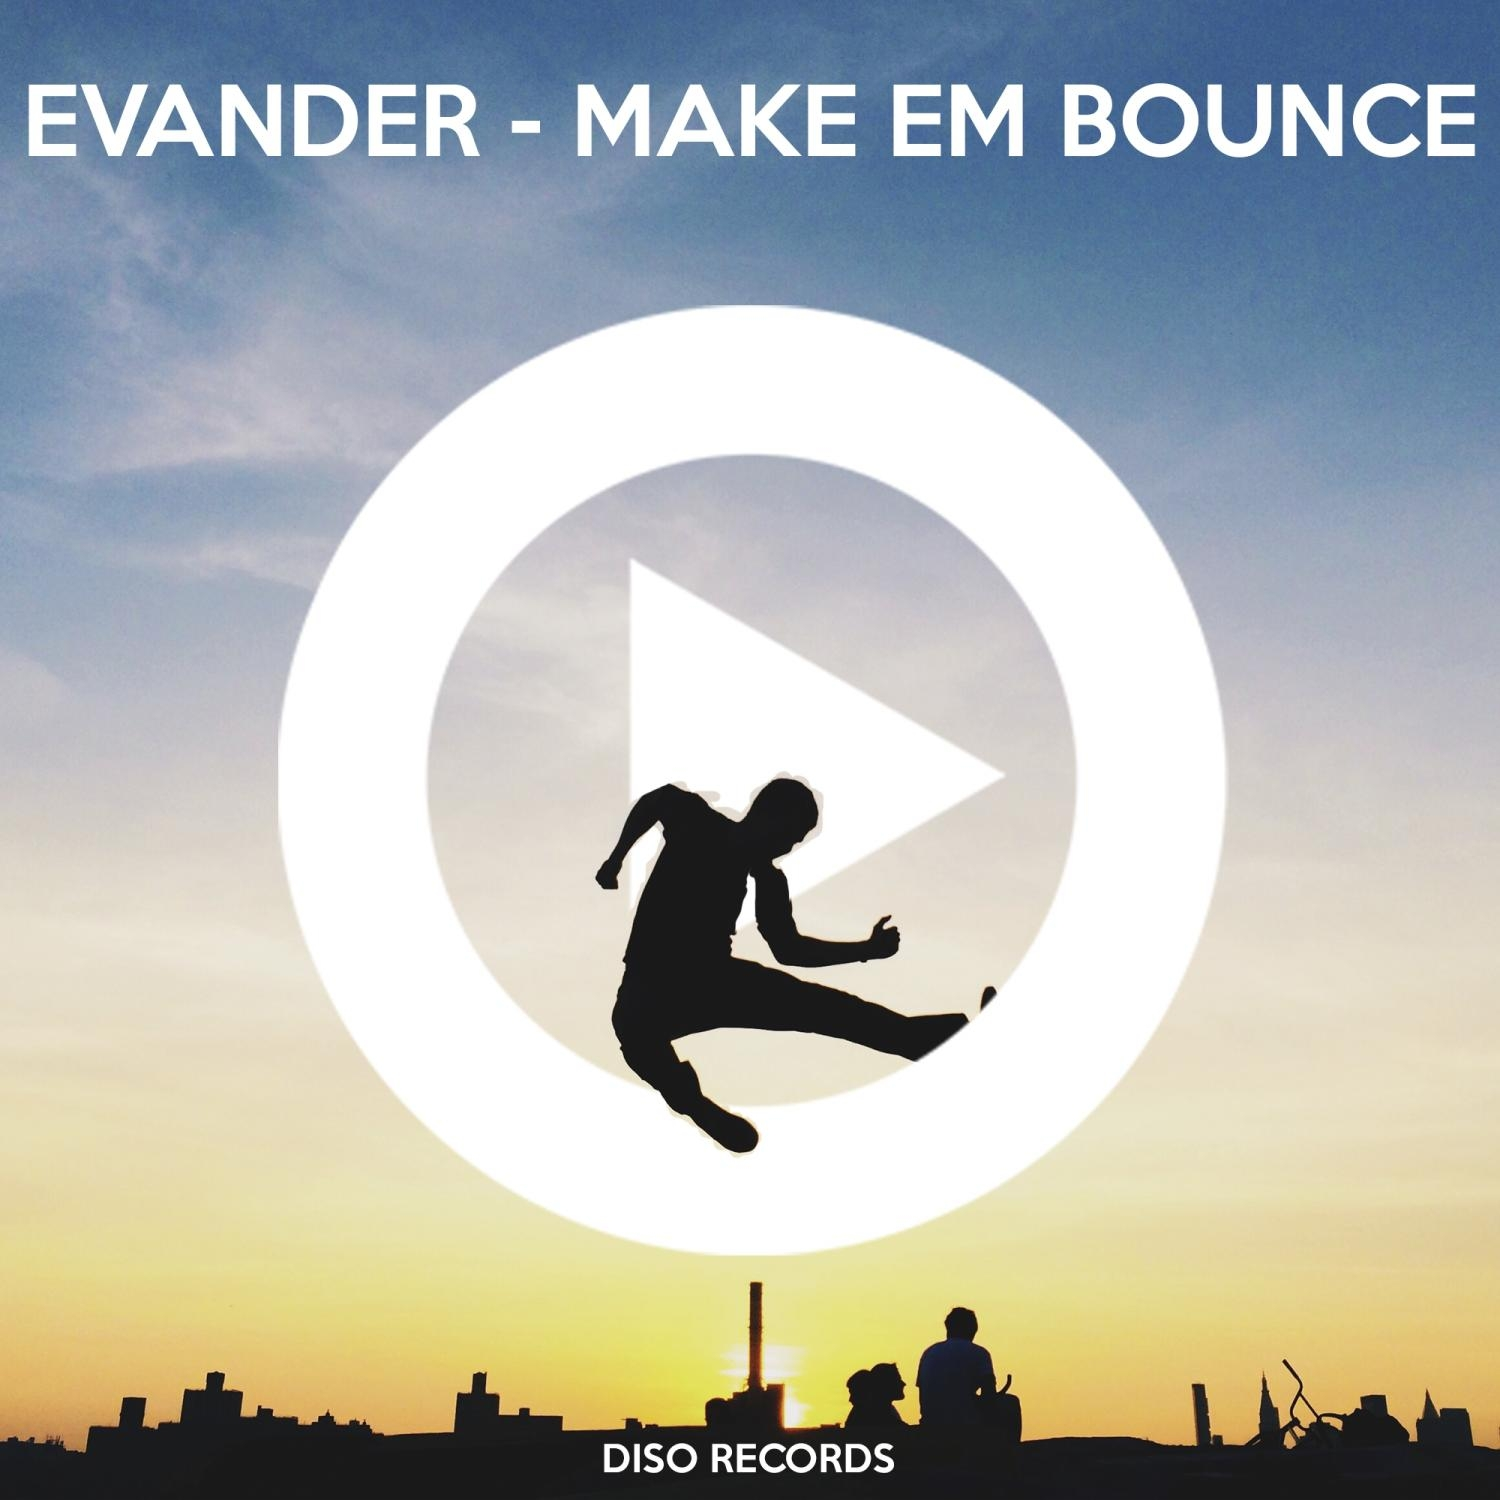 Evander - Make Em Bounce (Original Mix)